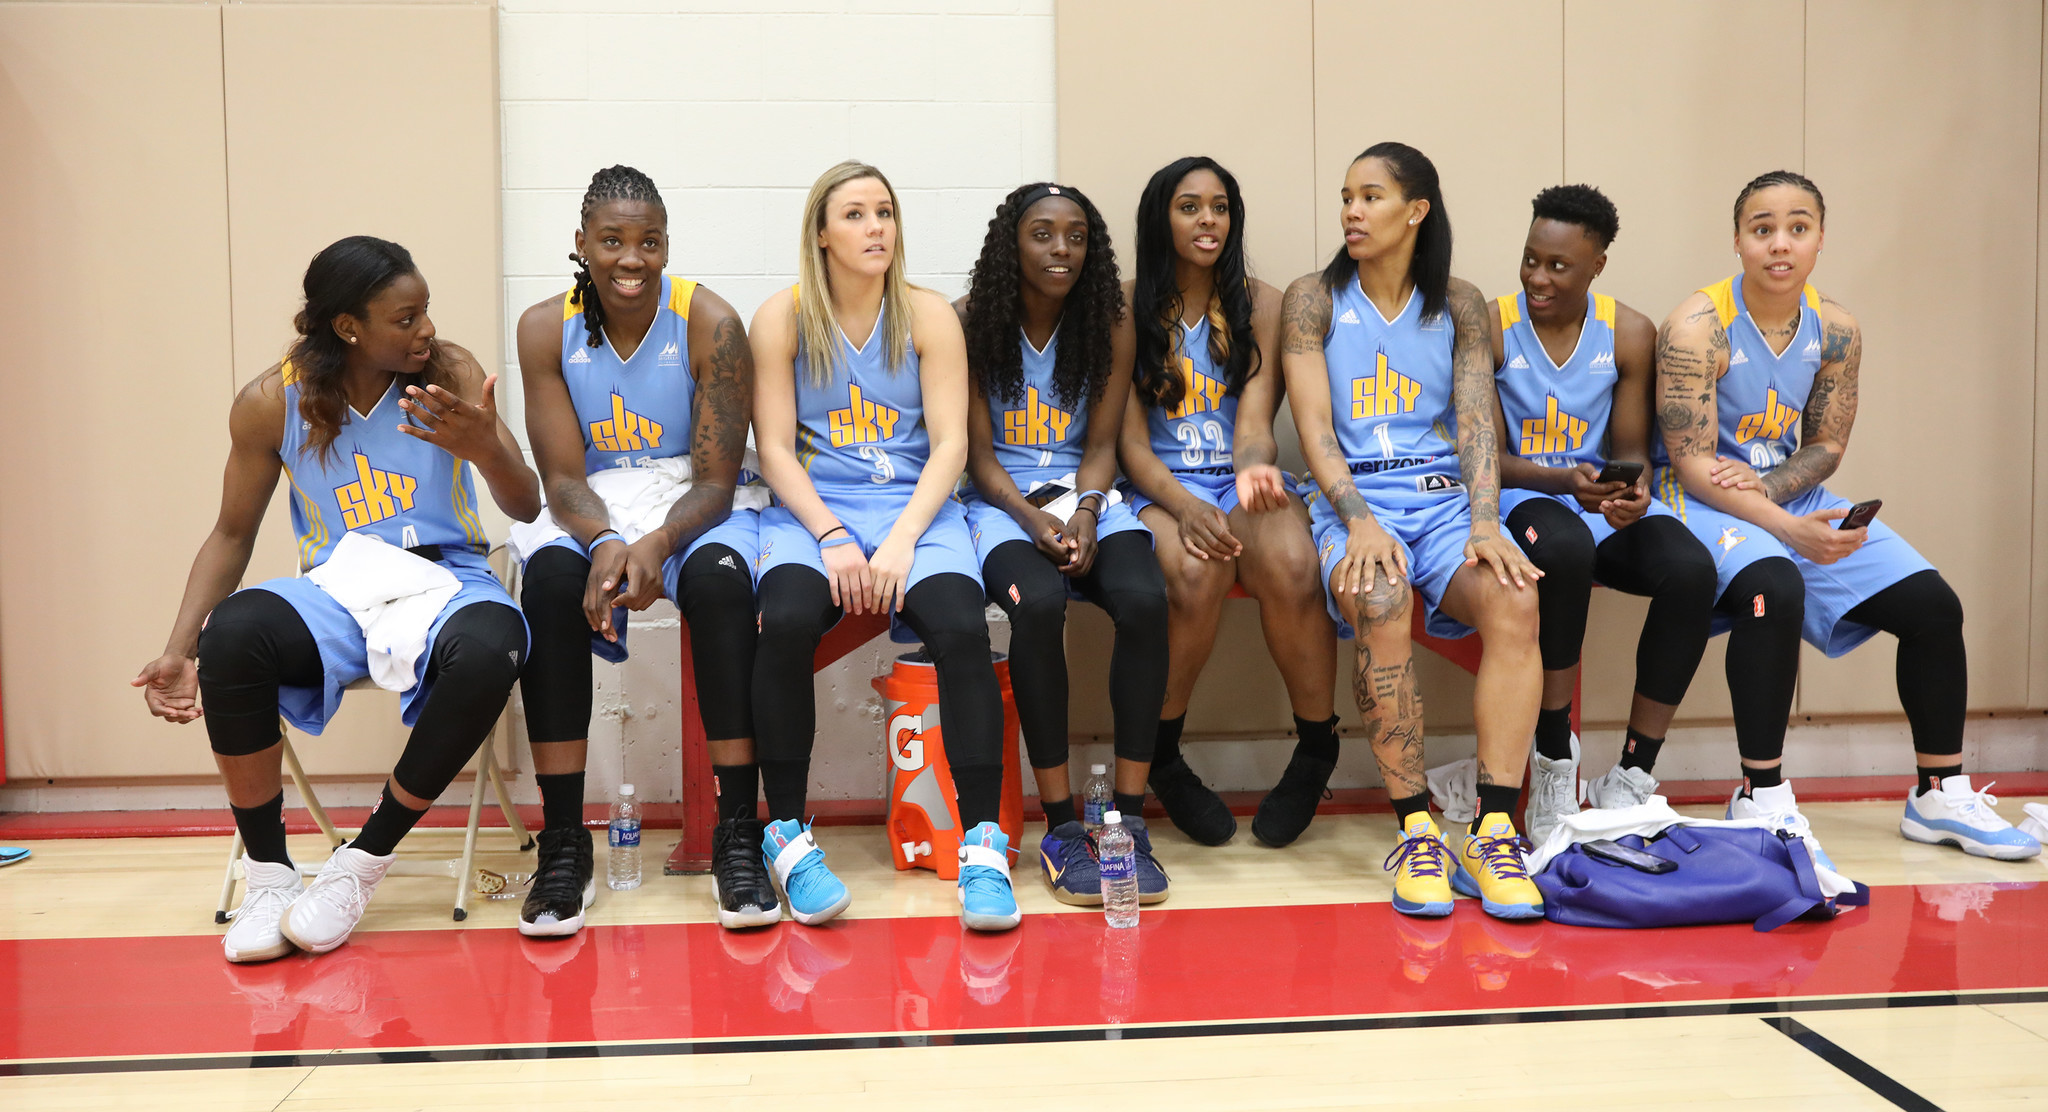 Sky set final roster ahead of Sunday's season opener ...